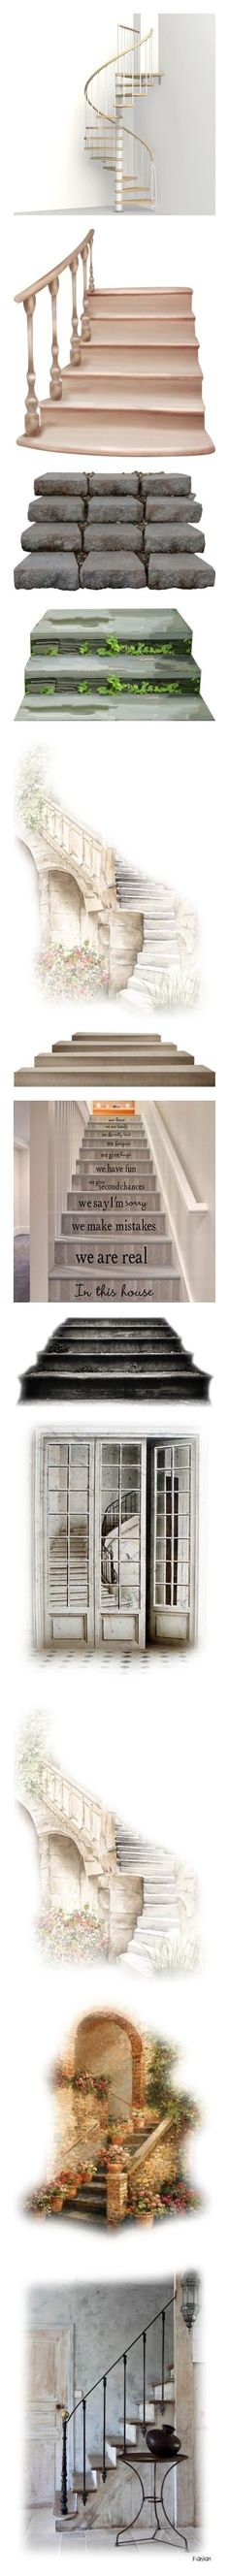 """""""Stairs"""" by mlkdmr ❤ liked on Polyvore featuring stairs, backgrounds, rooms, interiors, empty rooms, effect, borders, picture frame, fillers and garden"""